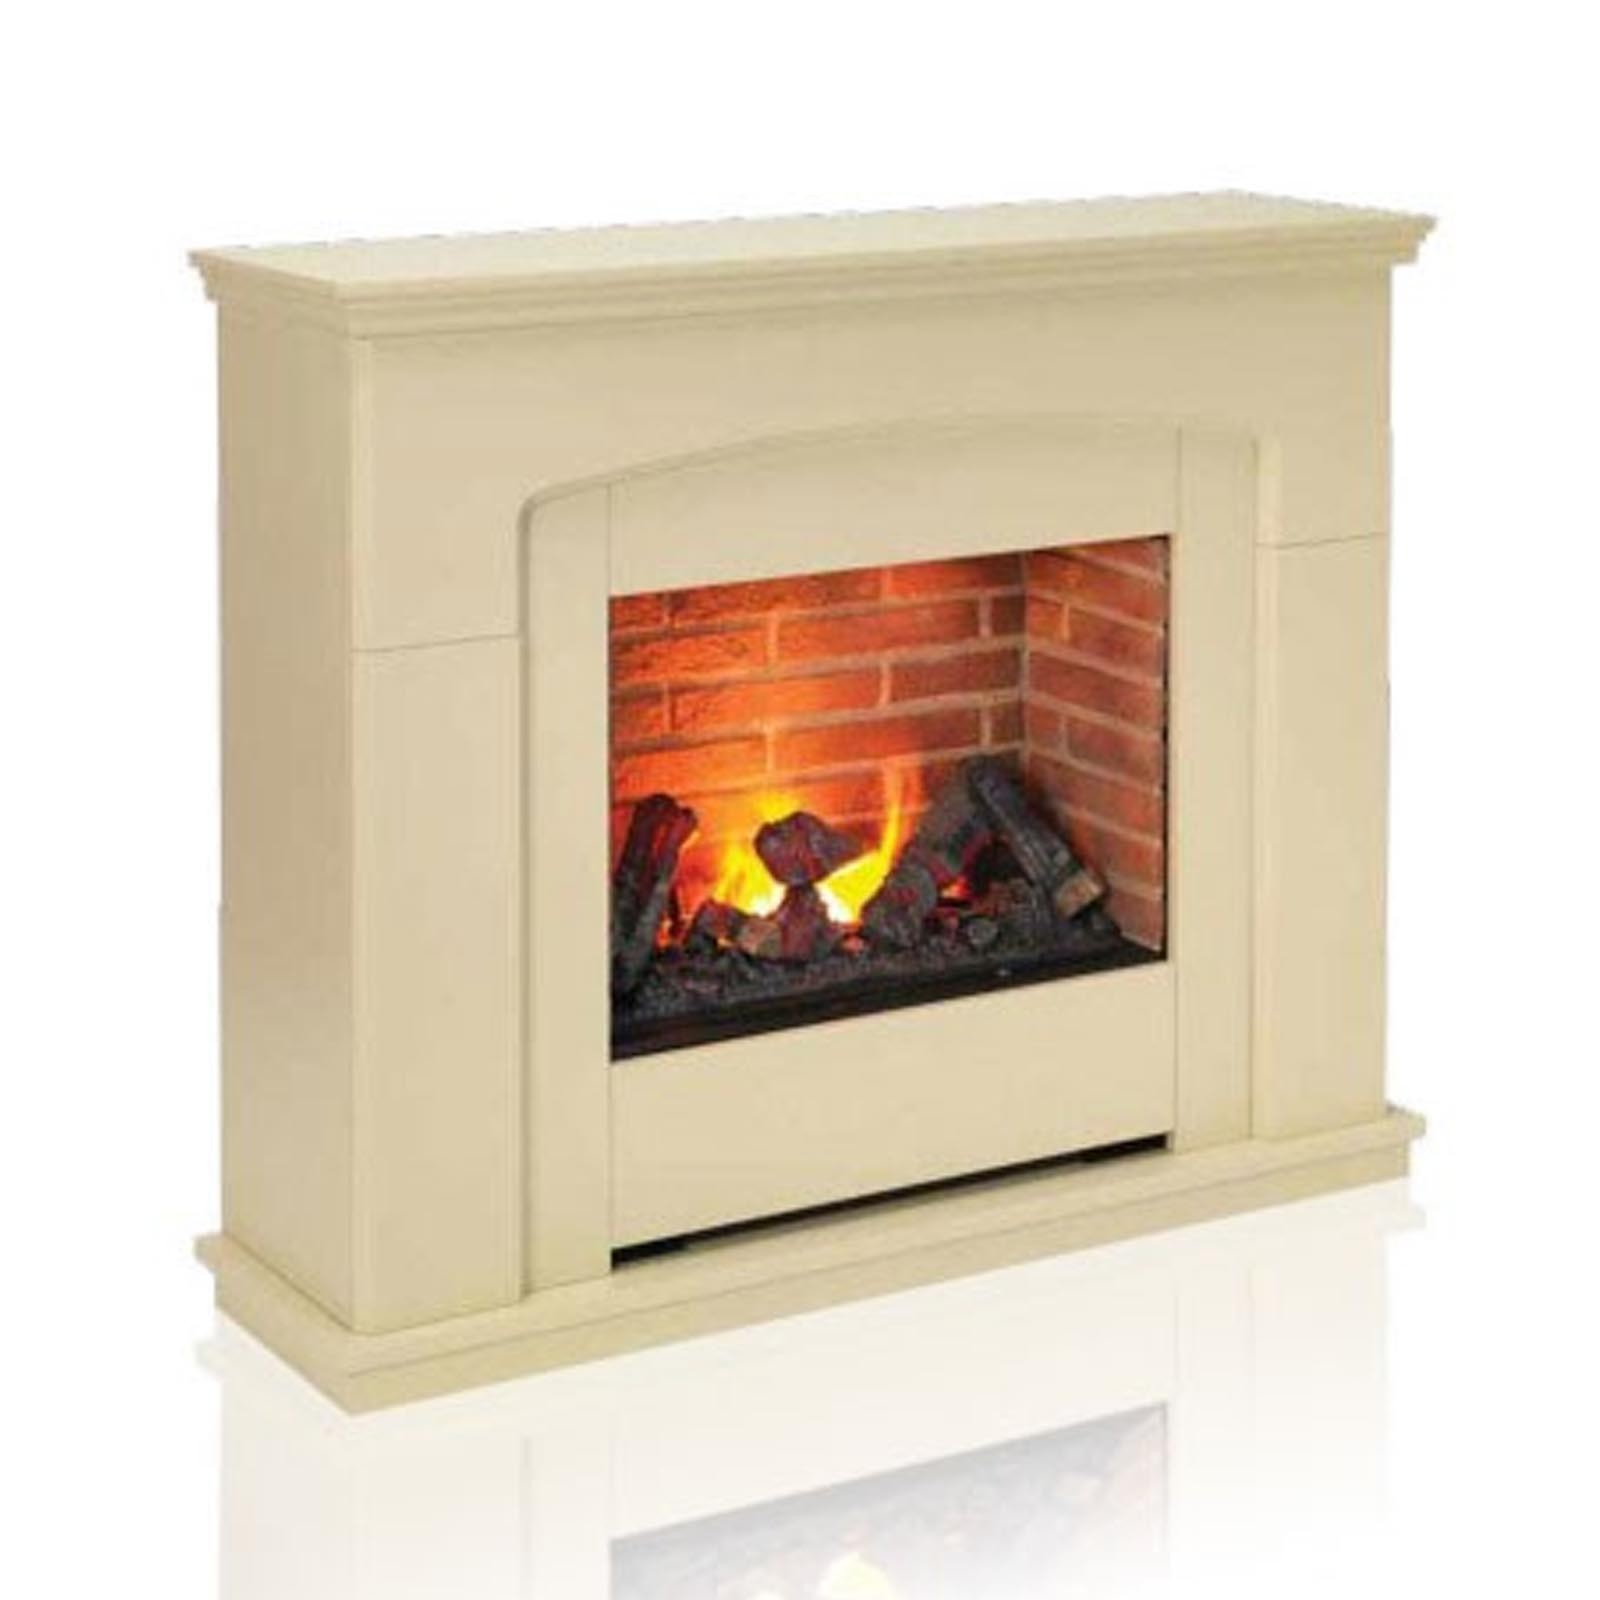 We have a selection of Dimplex complete electric fireplace suites for further information contact us today at sales@fireplaces4life.co.uk product